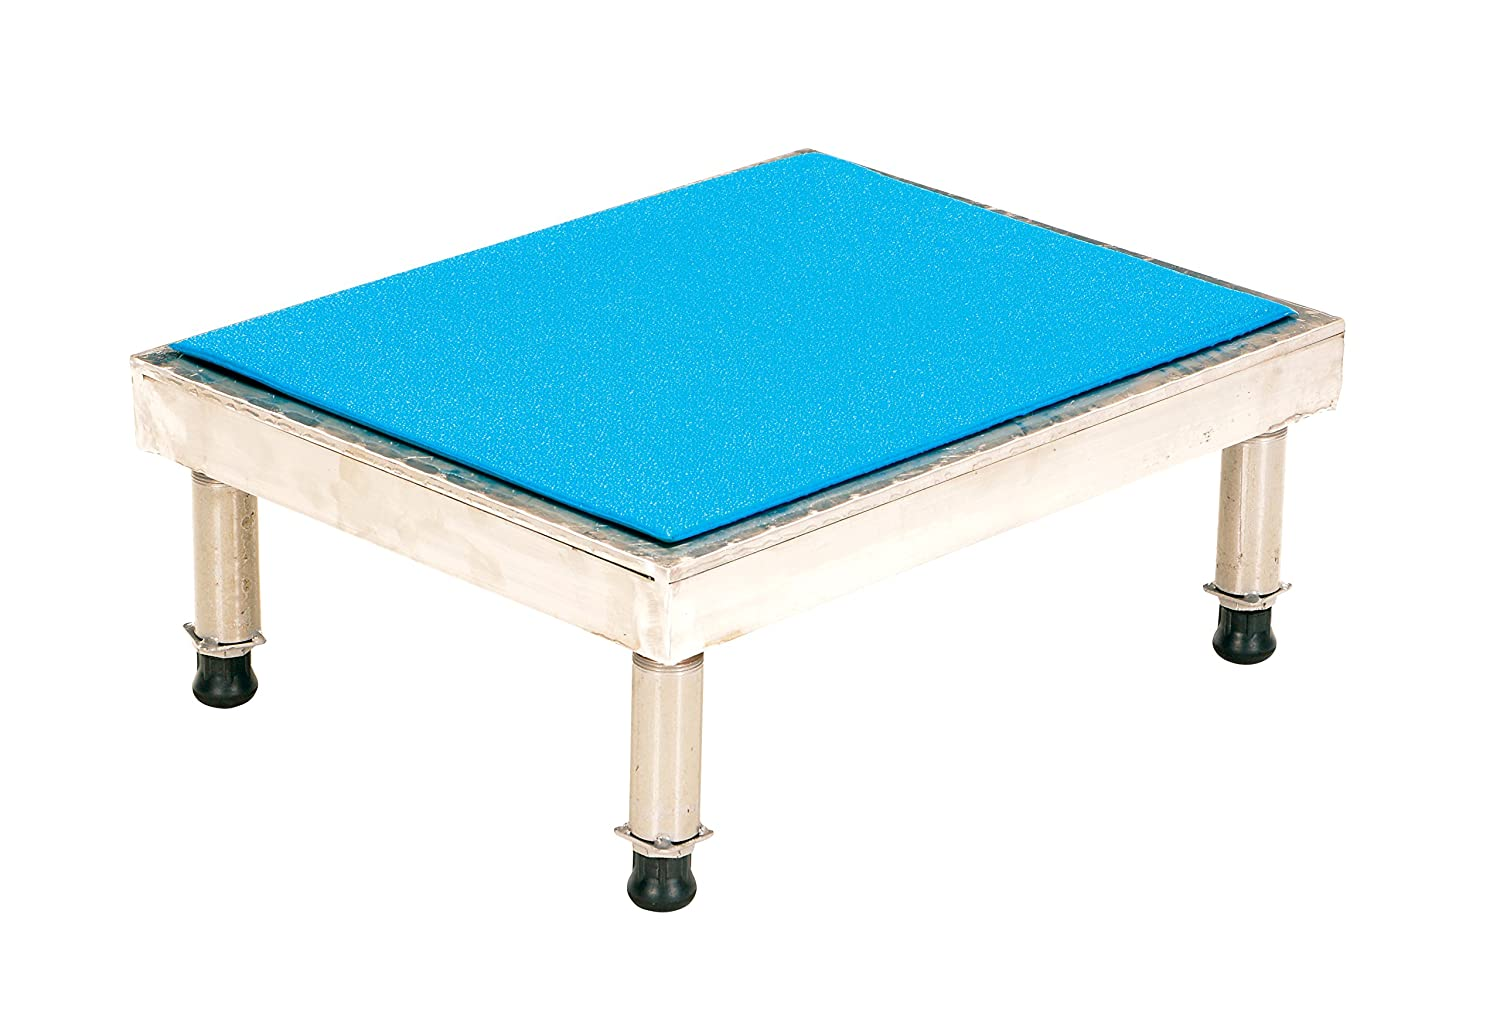 Vestil AHT-H-1924-A Aluminum Adjustable Low price Erg Quantity limited Work-Mate with Stand